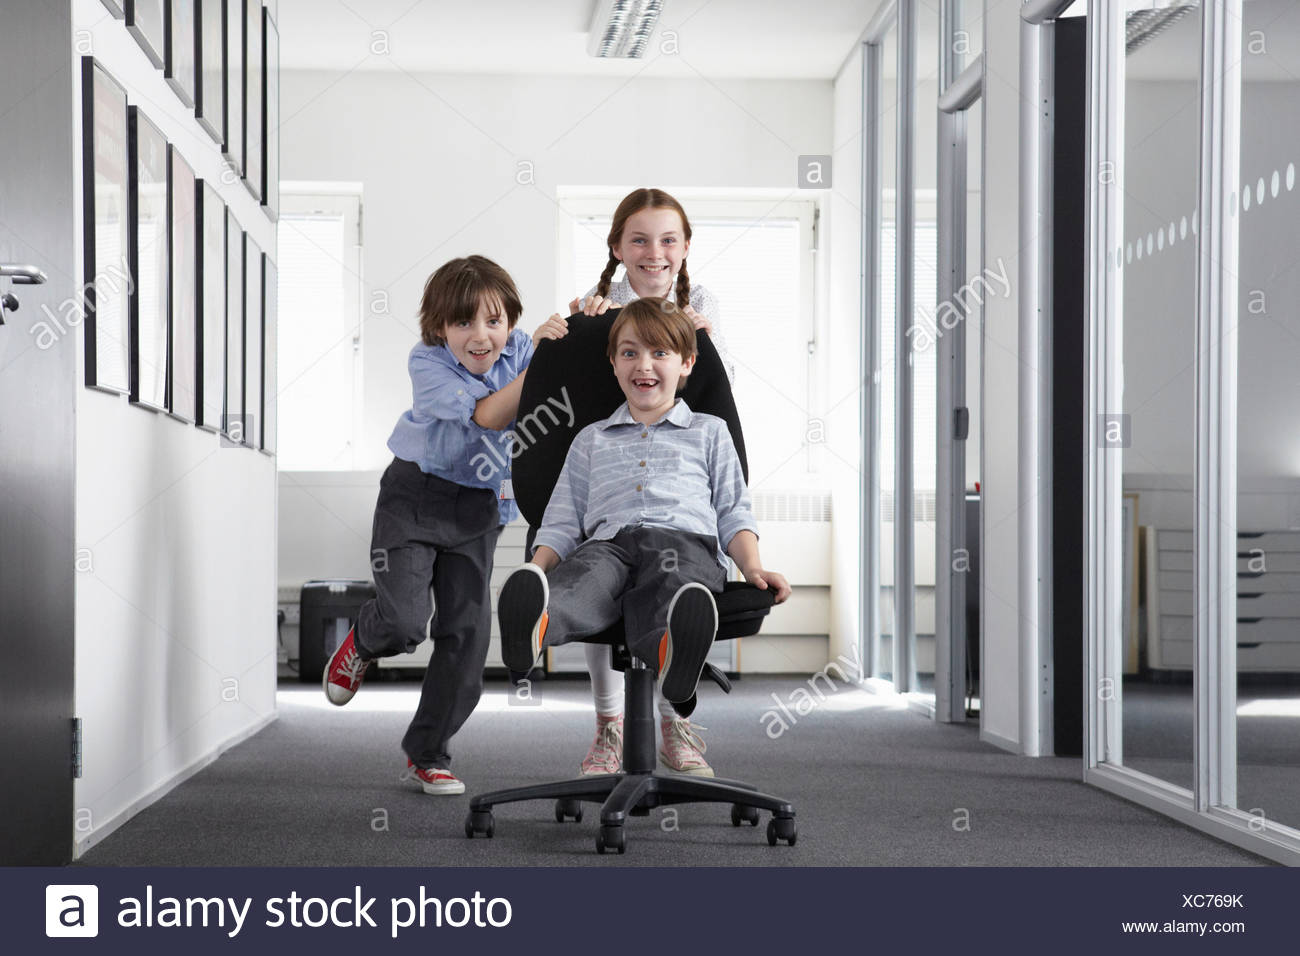 Three children playing in office corridor on office chair - Stock Image